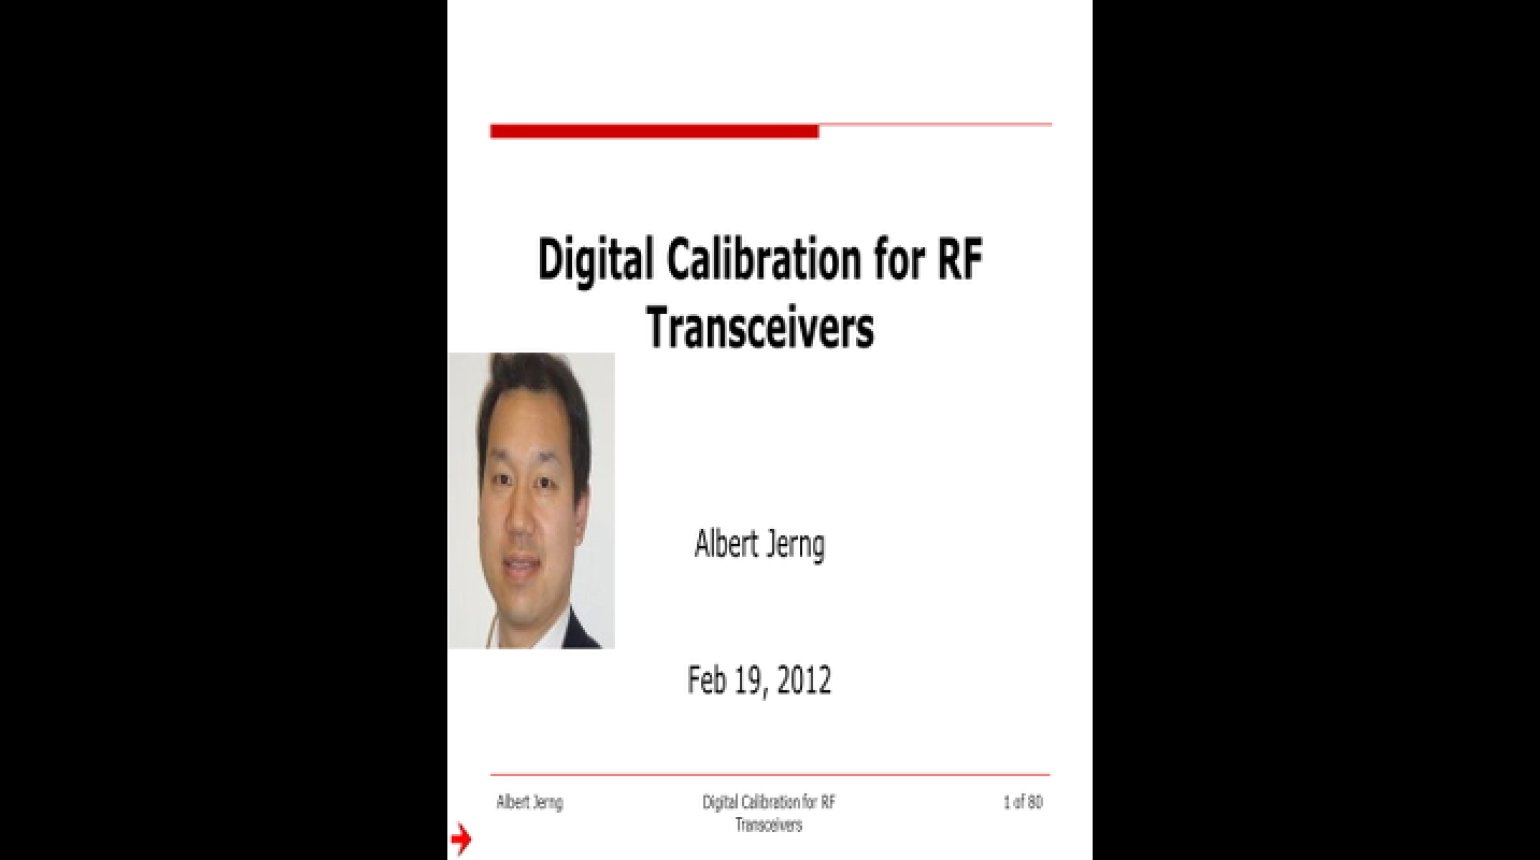 Digital Calibration for RF Transceivers Video